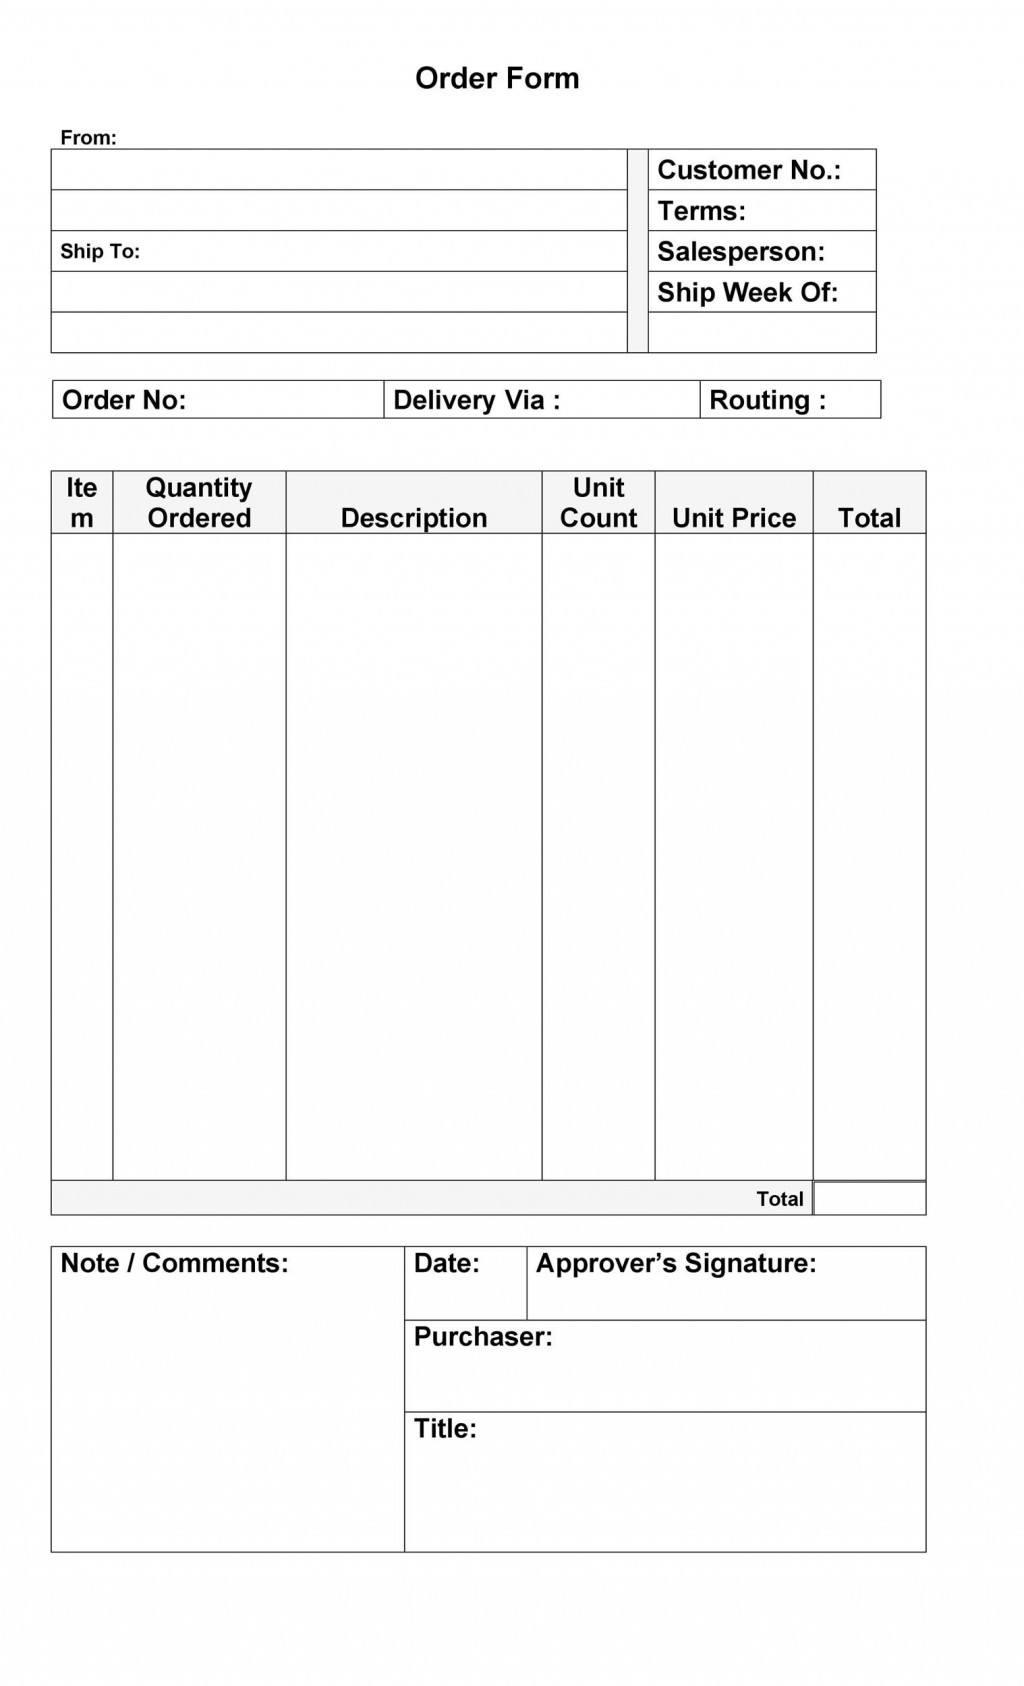 007 Fearsome Free Order Form Template Word High Def  T Shirt Job Application RegistrationLarge